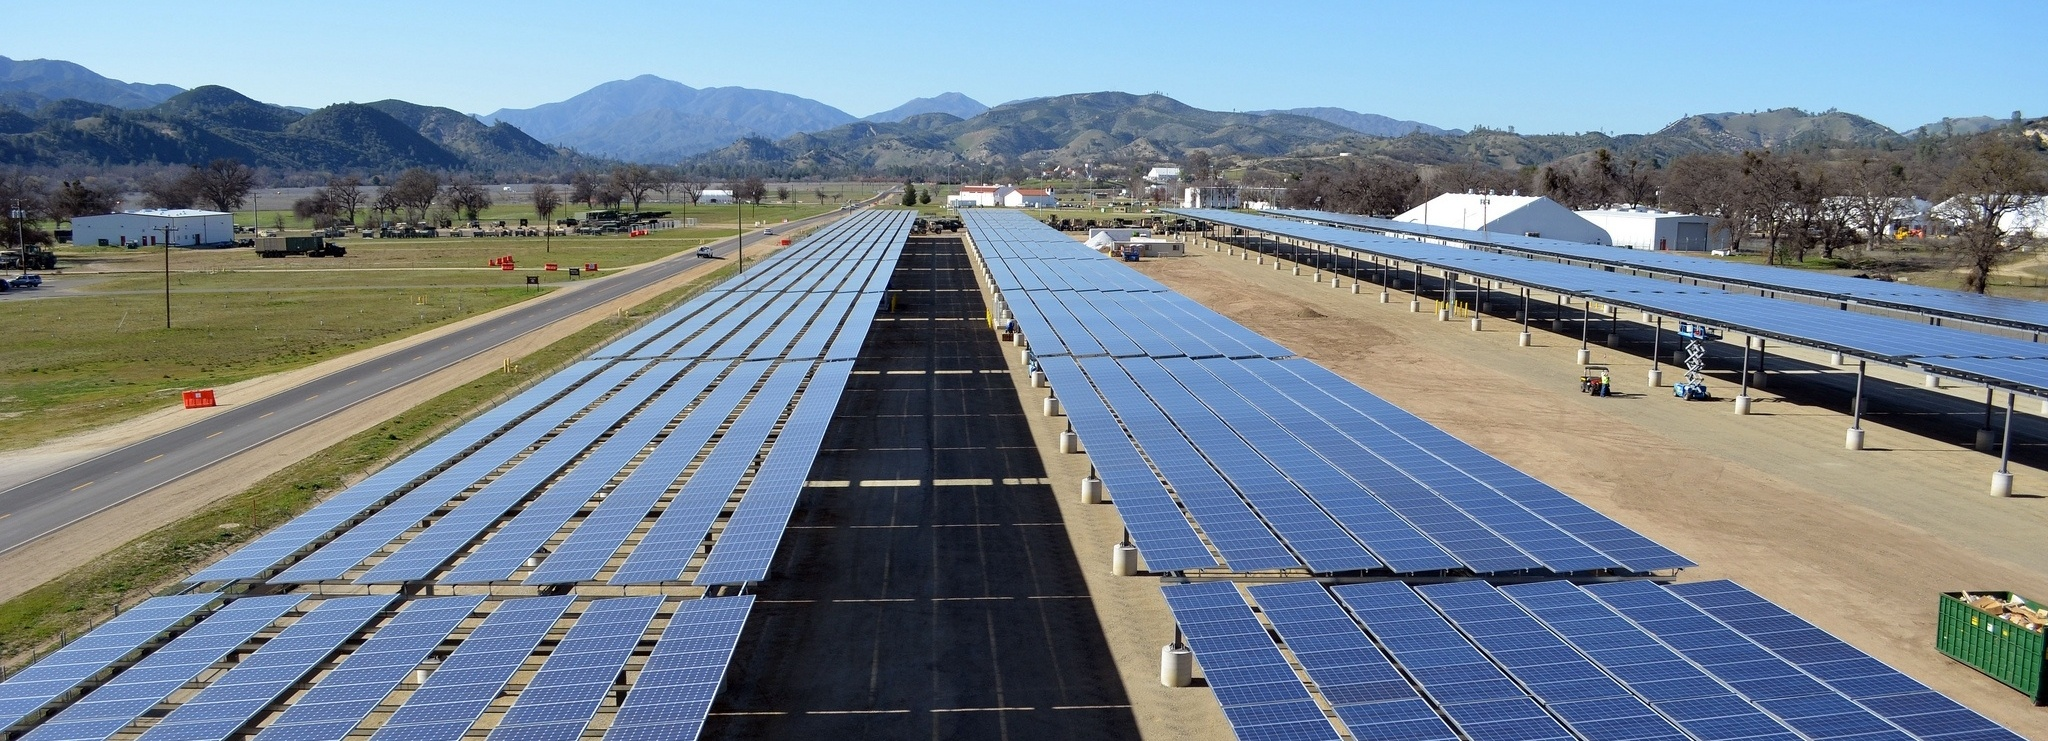 california-solar-by-usace-815821-edited.jpg